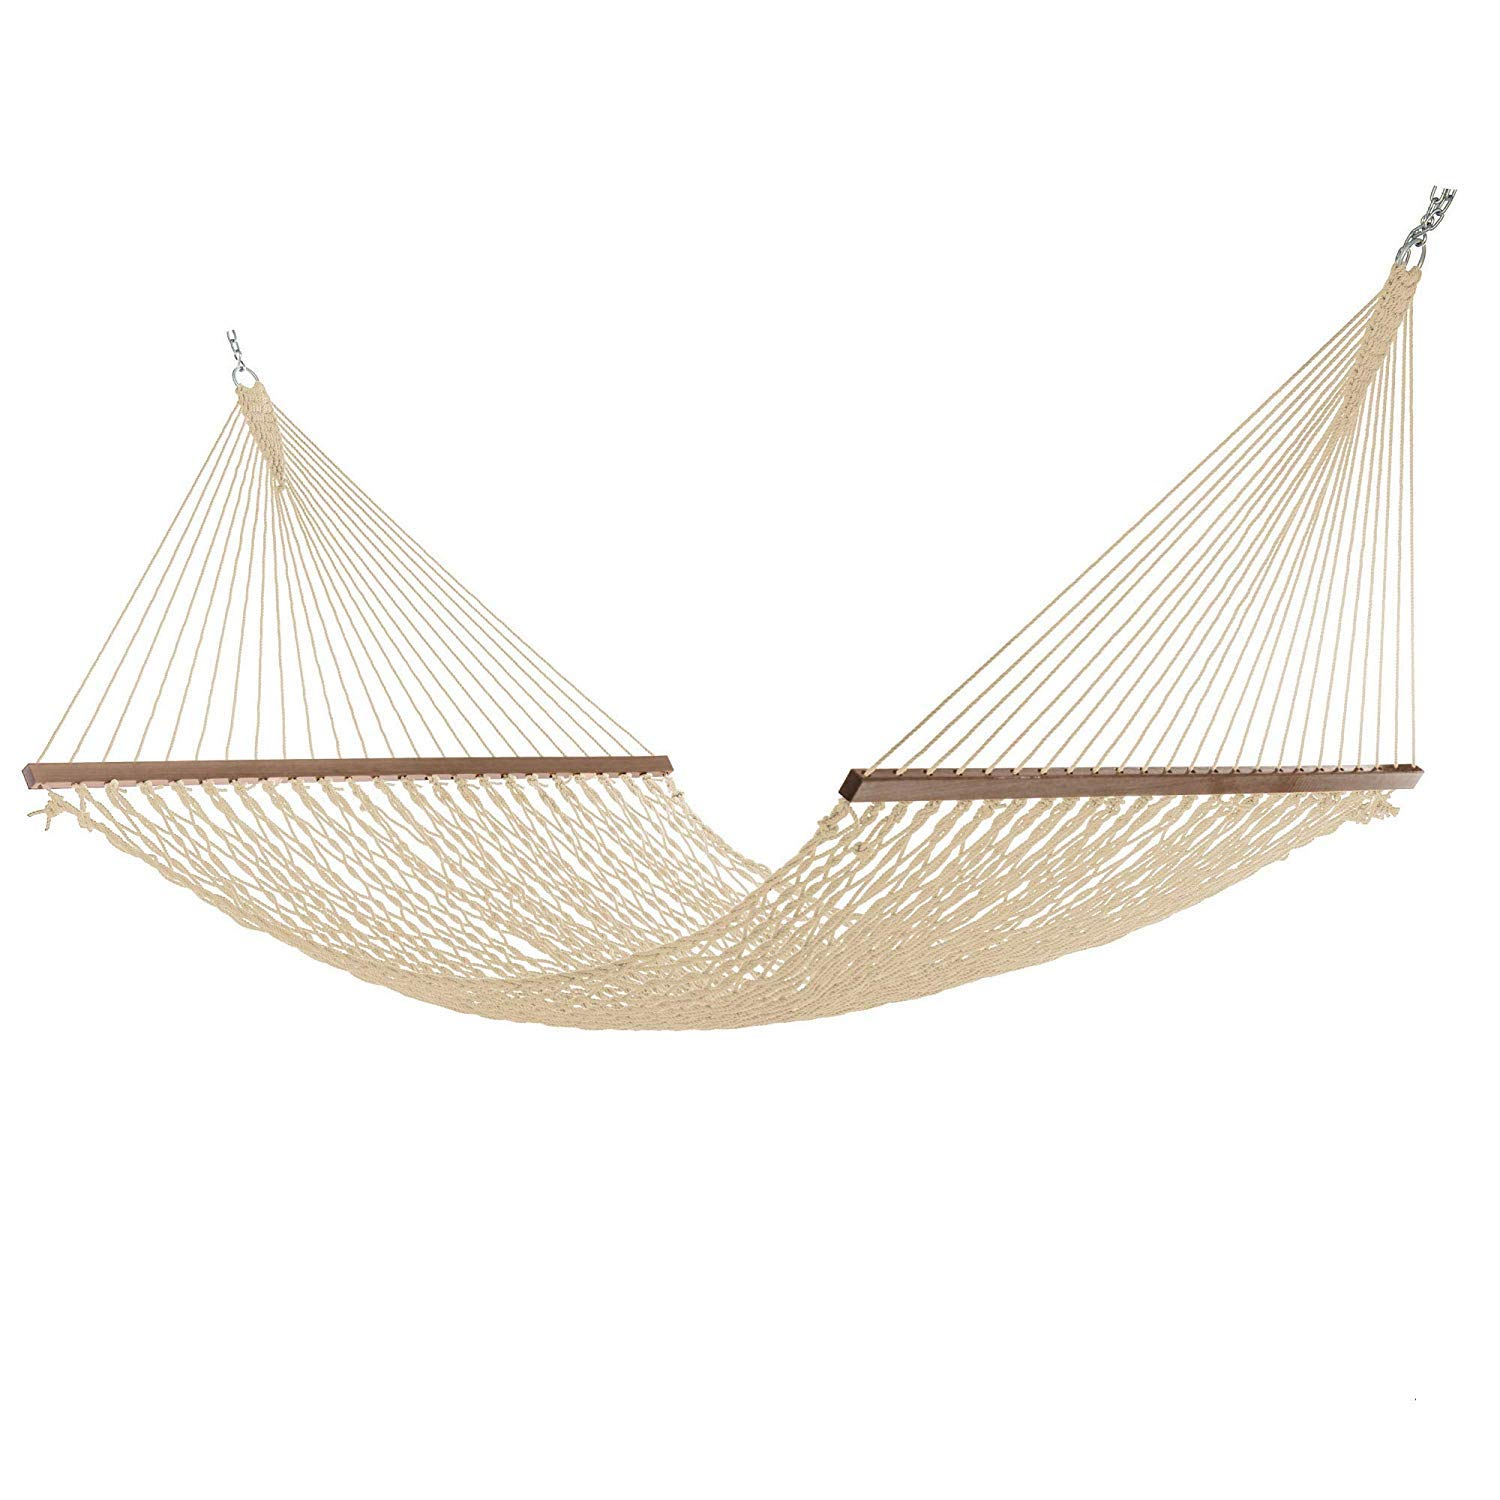 Outdoor Essentials Large DuraCord Rope Hammock, Quick Dry Rope Hammock with Double Size Solid Wood Spreader Bar Outdoor Patio Yard Poolside Hammock with Chains, 2 Person 450 Pound Capacity